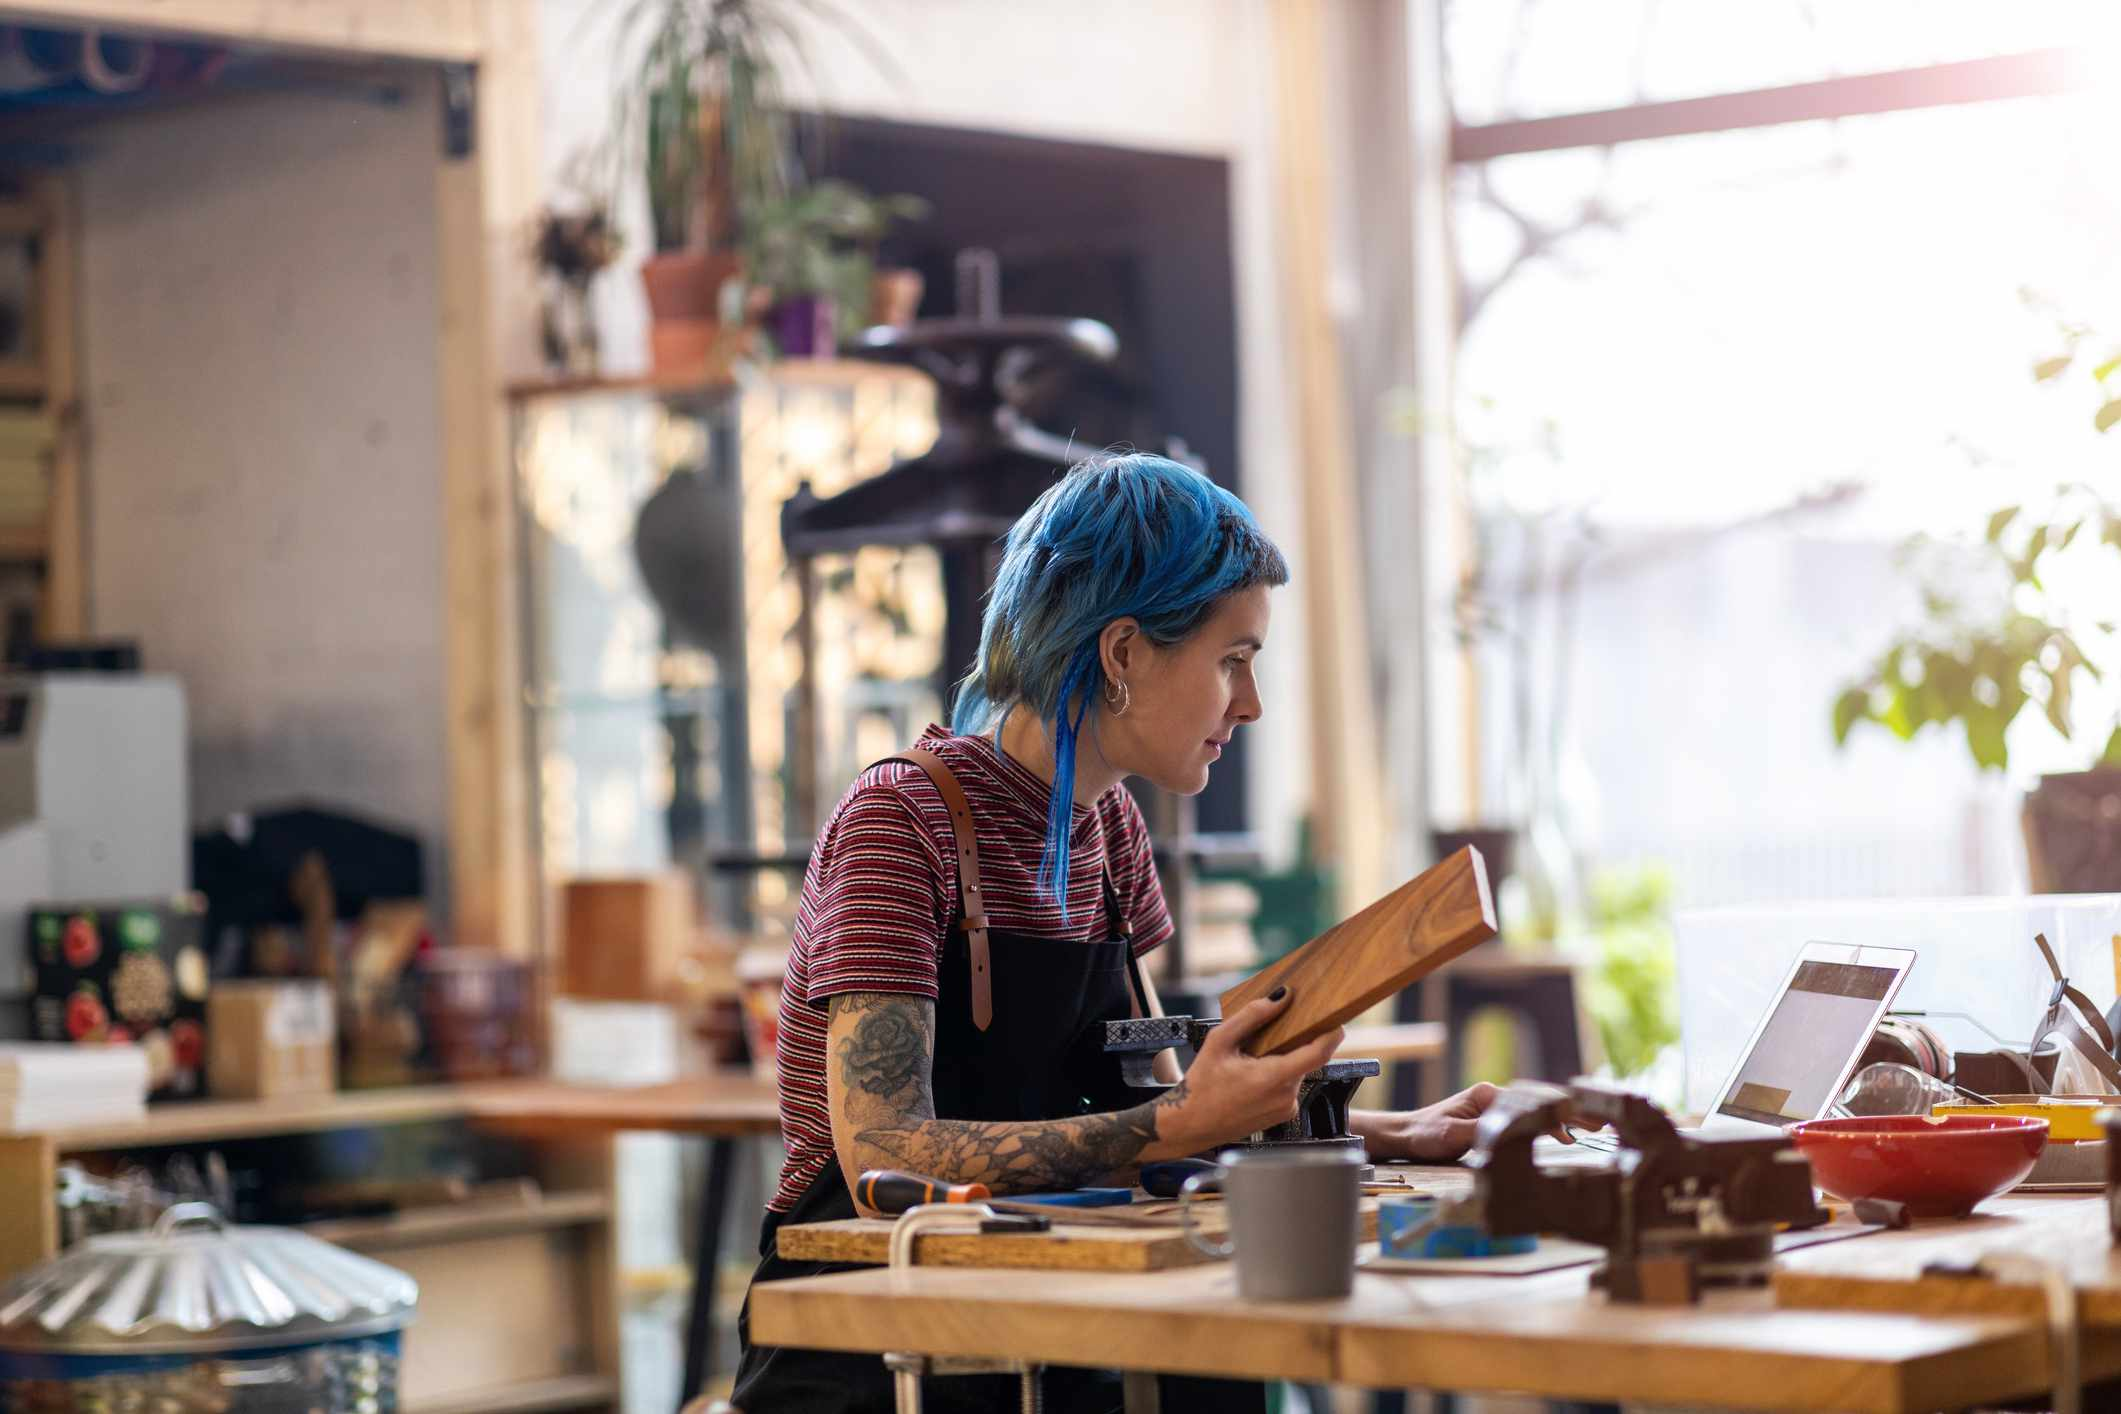 A woman with blue hair in an art studio.